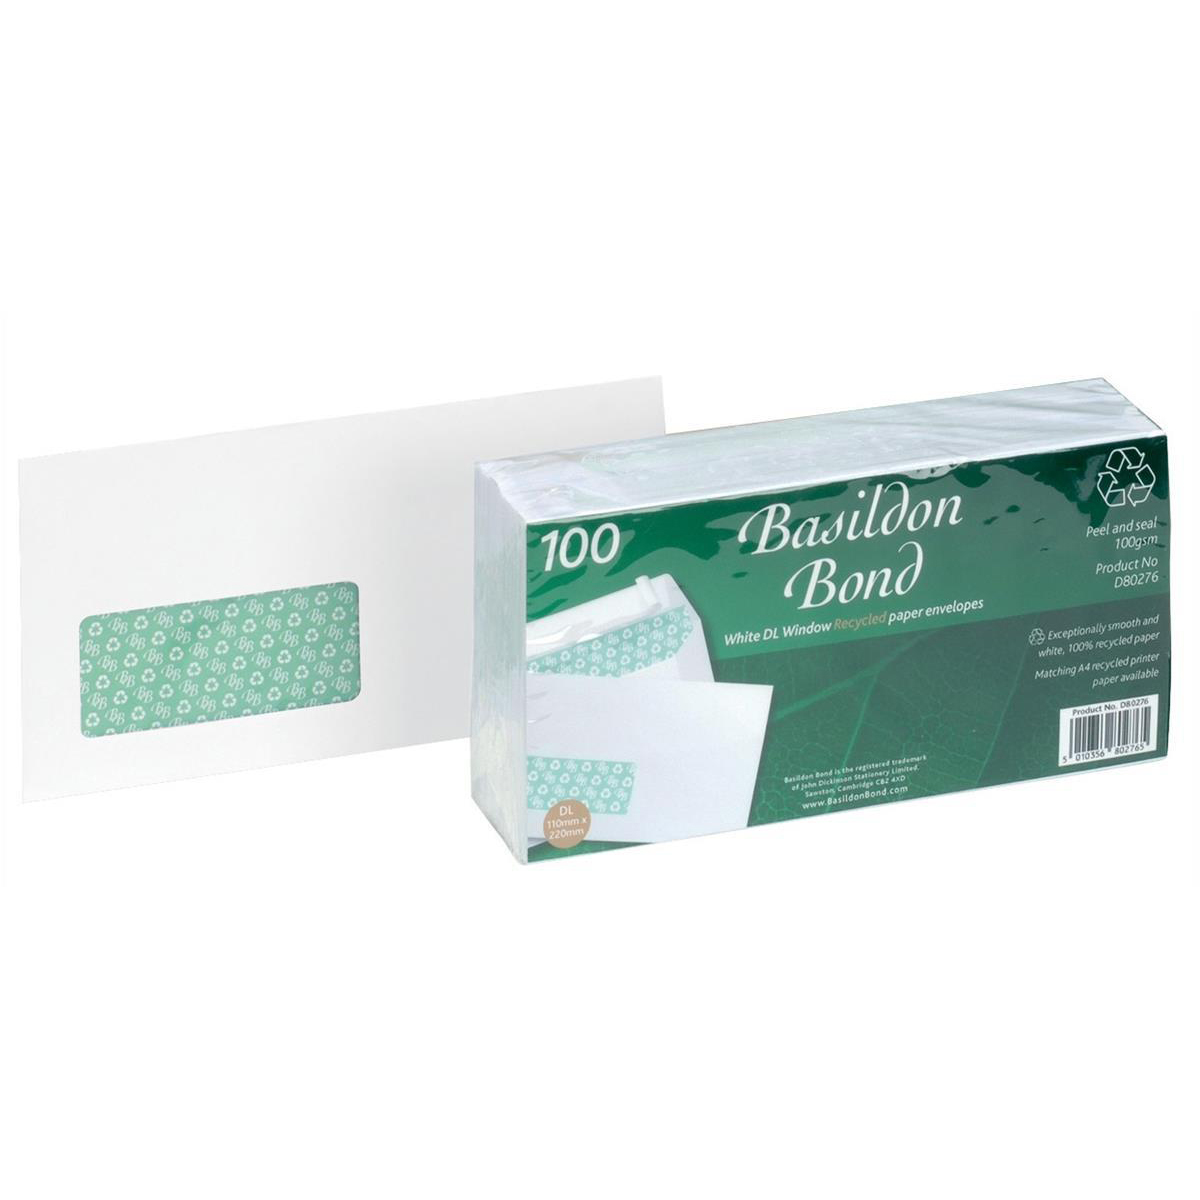 Basildon Bond Envelopes Recycled Wallet Peel and Seal Window 120gsm DL White Ref D80276 Pack 100